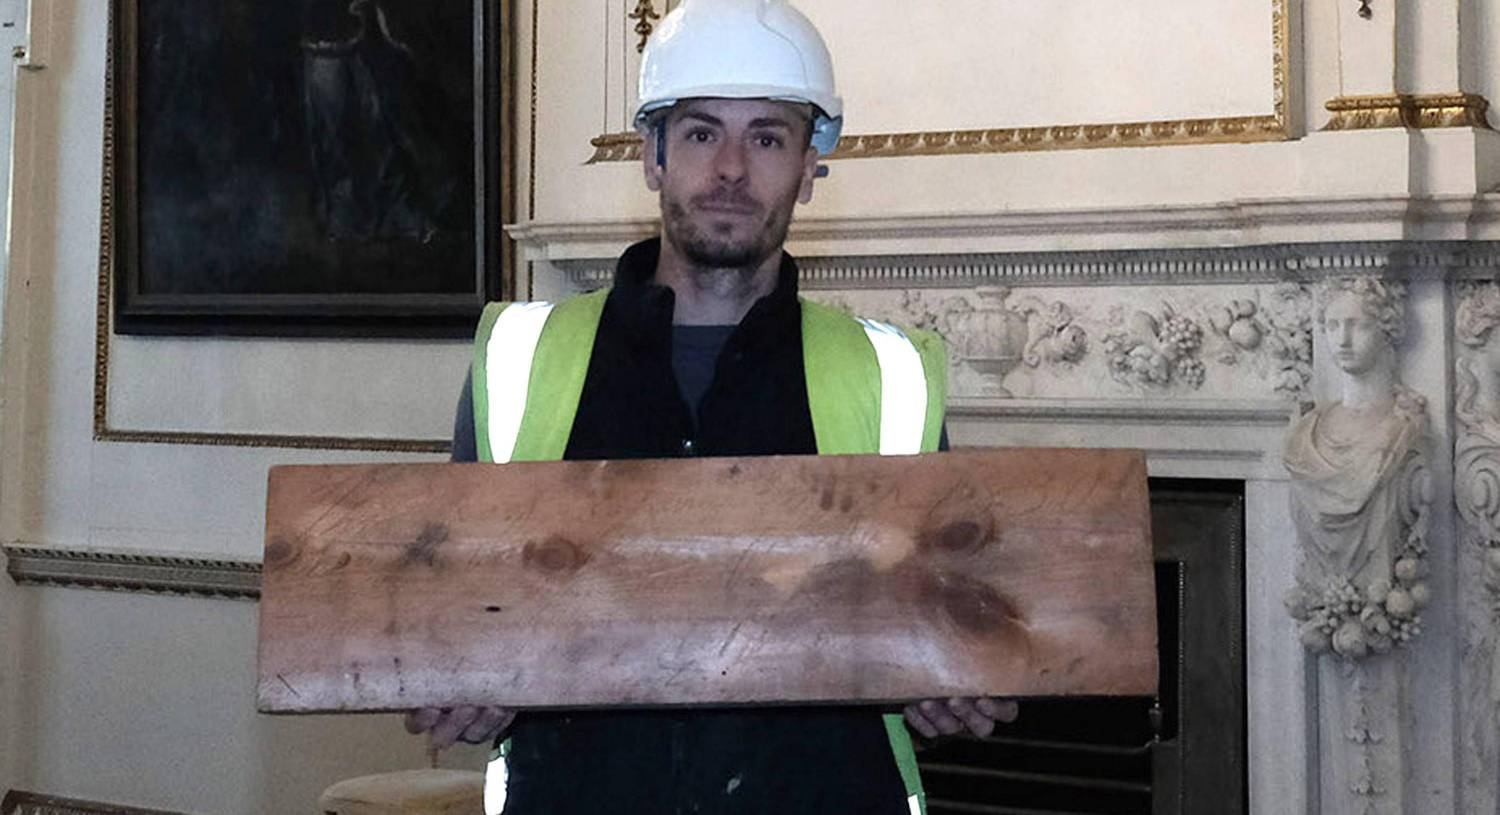 Joe Hutchinson, in Wentworth Woodhouse, holding an uncovered roof board with an inscription etched into it from 1830, they are in the Van Dyk room where the board was found in the roofspace above them. Picture: PA